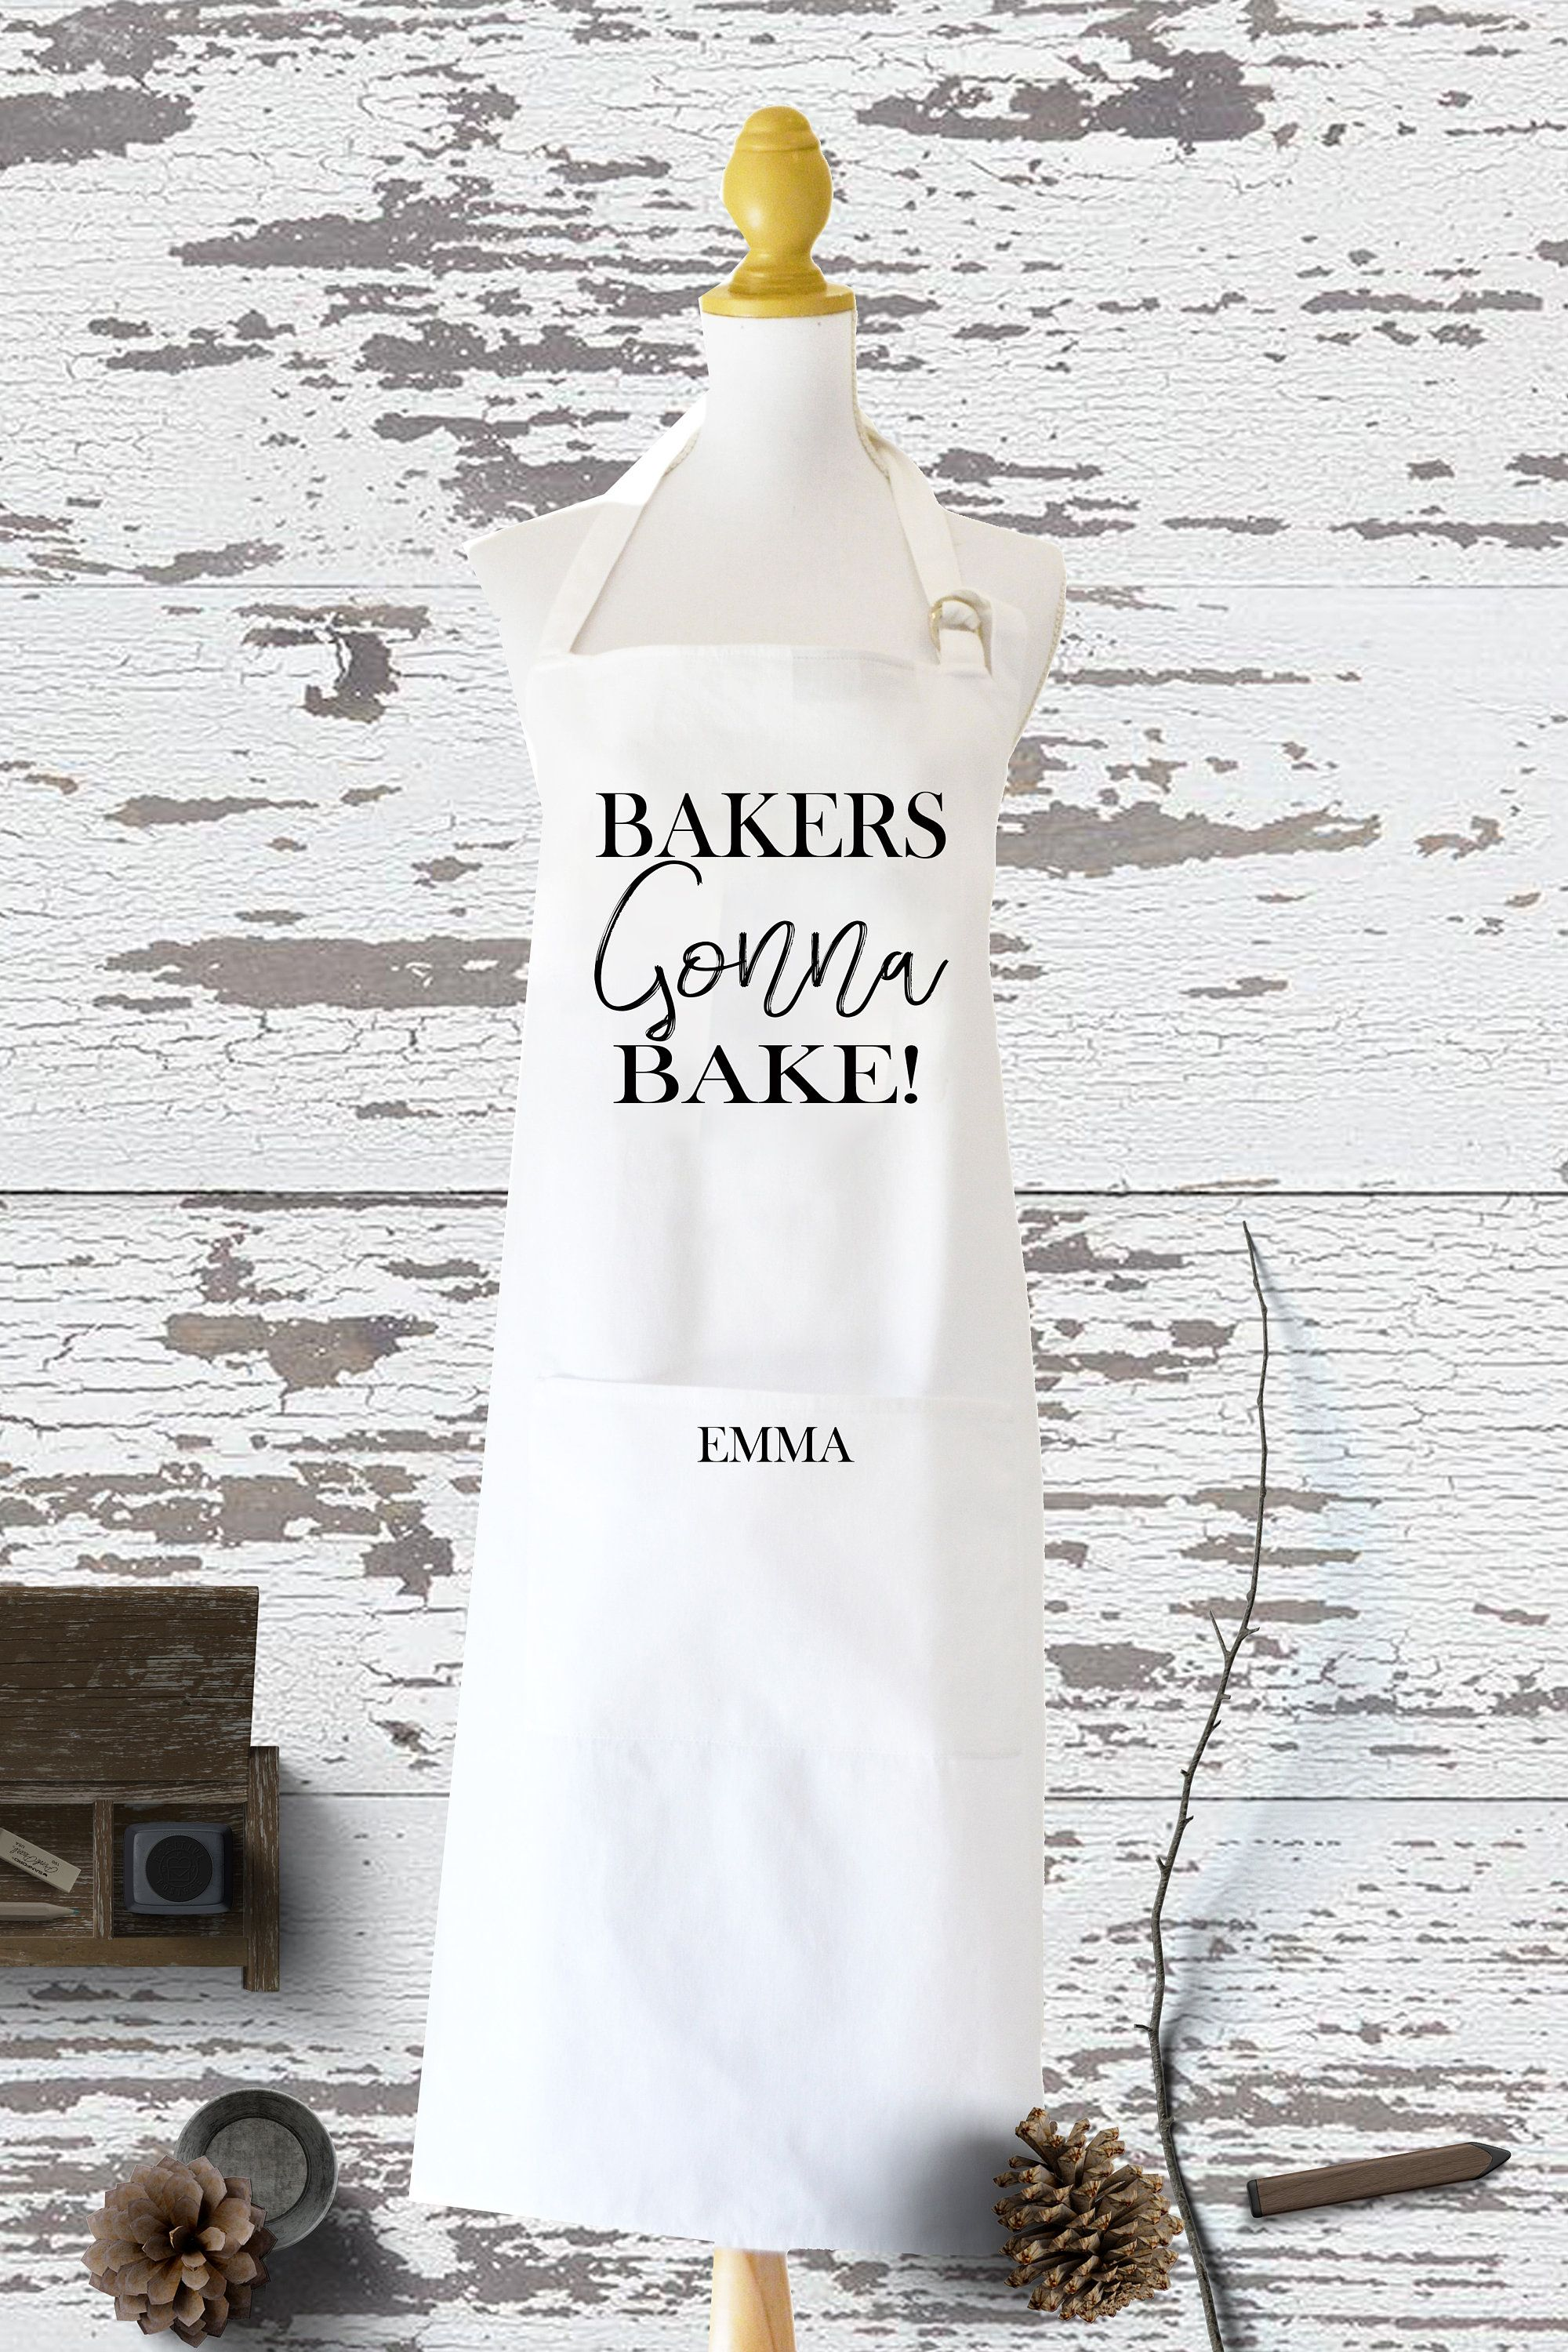 Personalised Apron, Baking Gift Personalized Apron Cooking Gift, Fair trade Gifts, Full Kitchen Apron, Custom Made Kitchen Apron, Kitchen